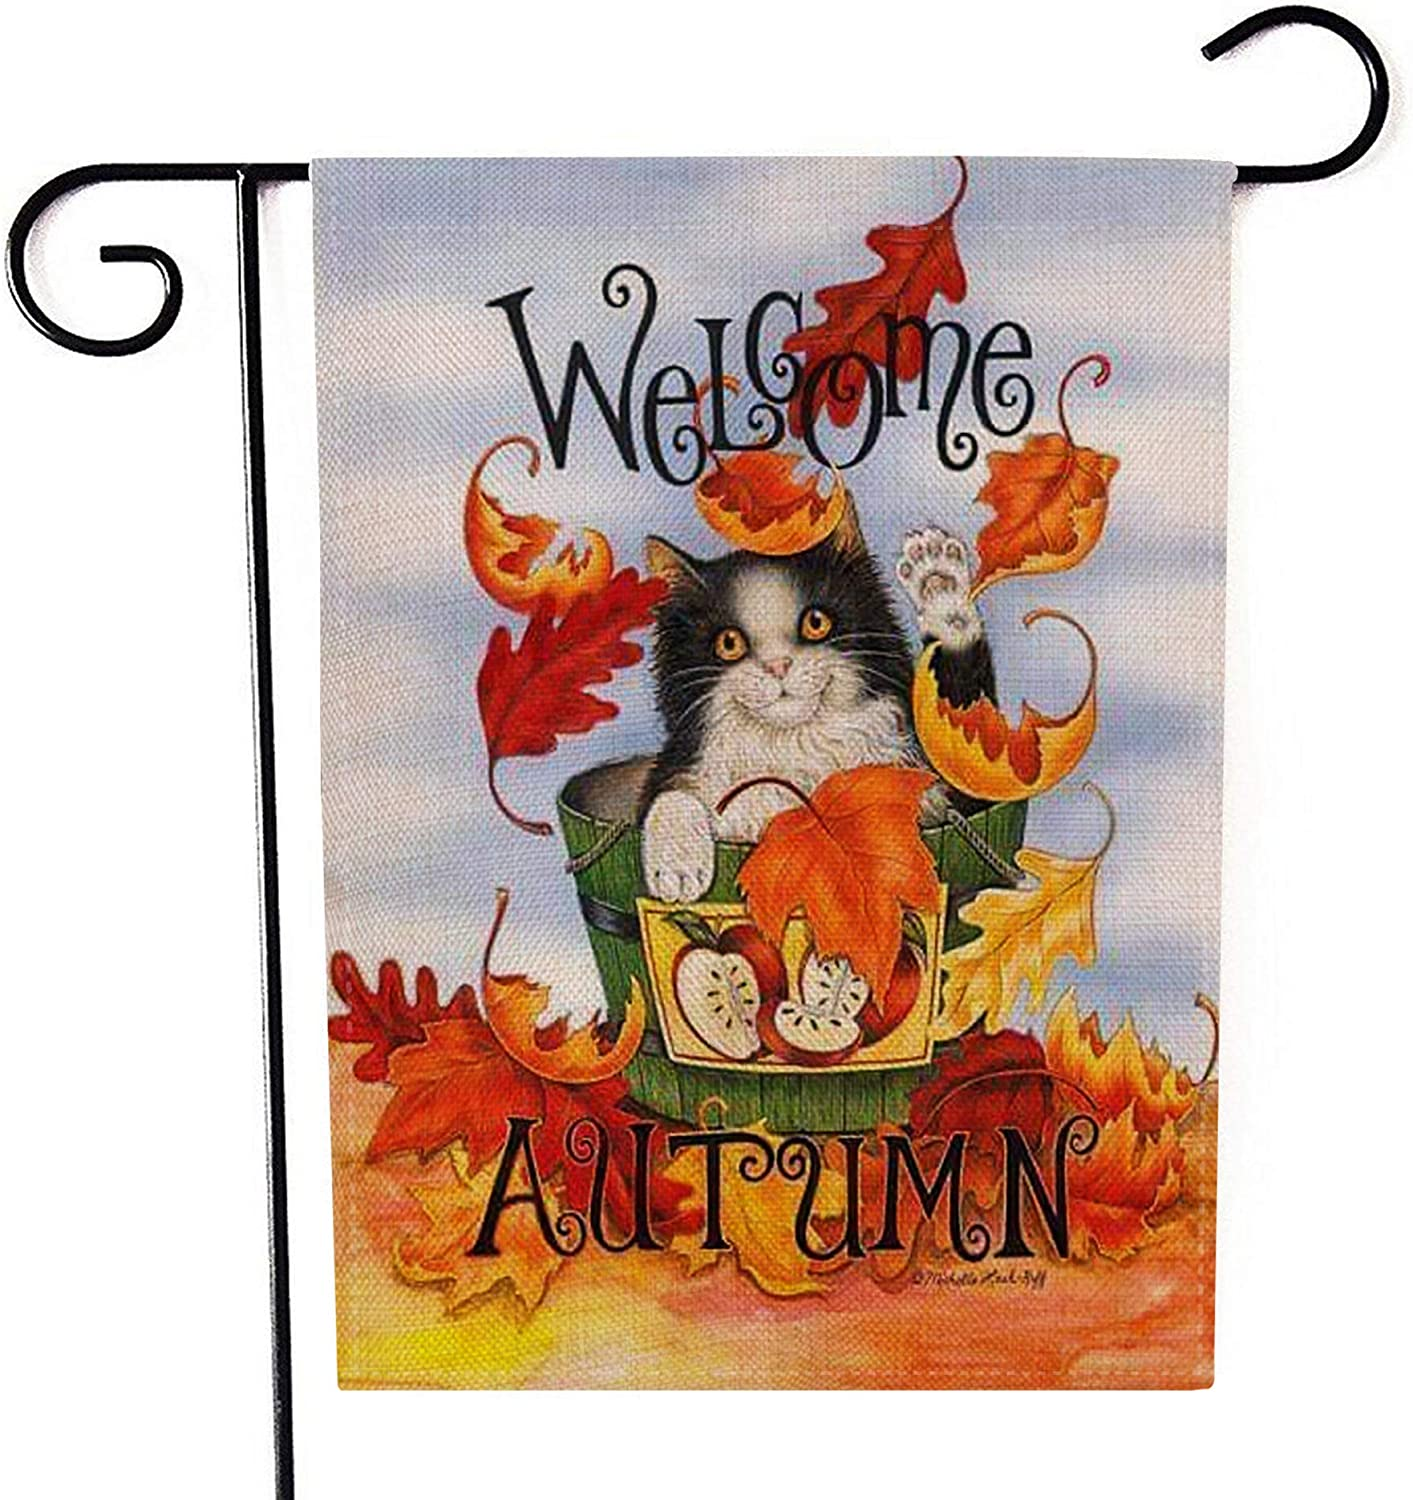 "Cat Welcome Autumn Garden Flag Double-Sided Farmhouse Autumn Yard Burlap Banner,Flag for Fall,Thanksgiving Indoor Outdoor Decoration 12.6"" x 18.5"""